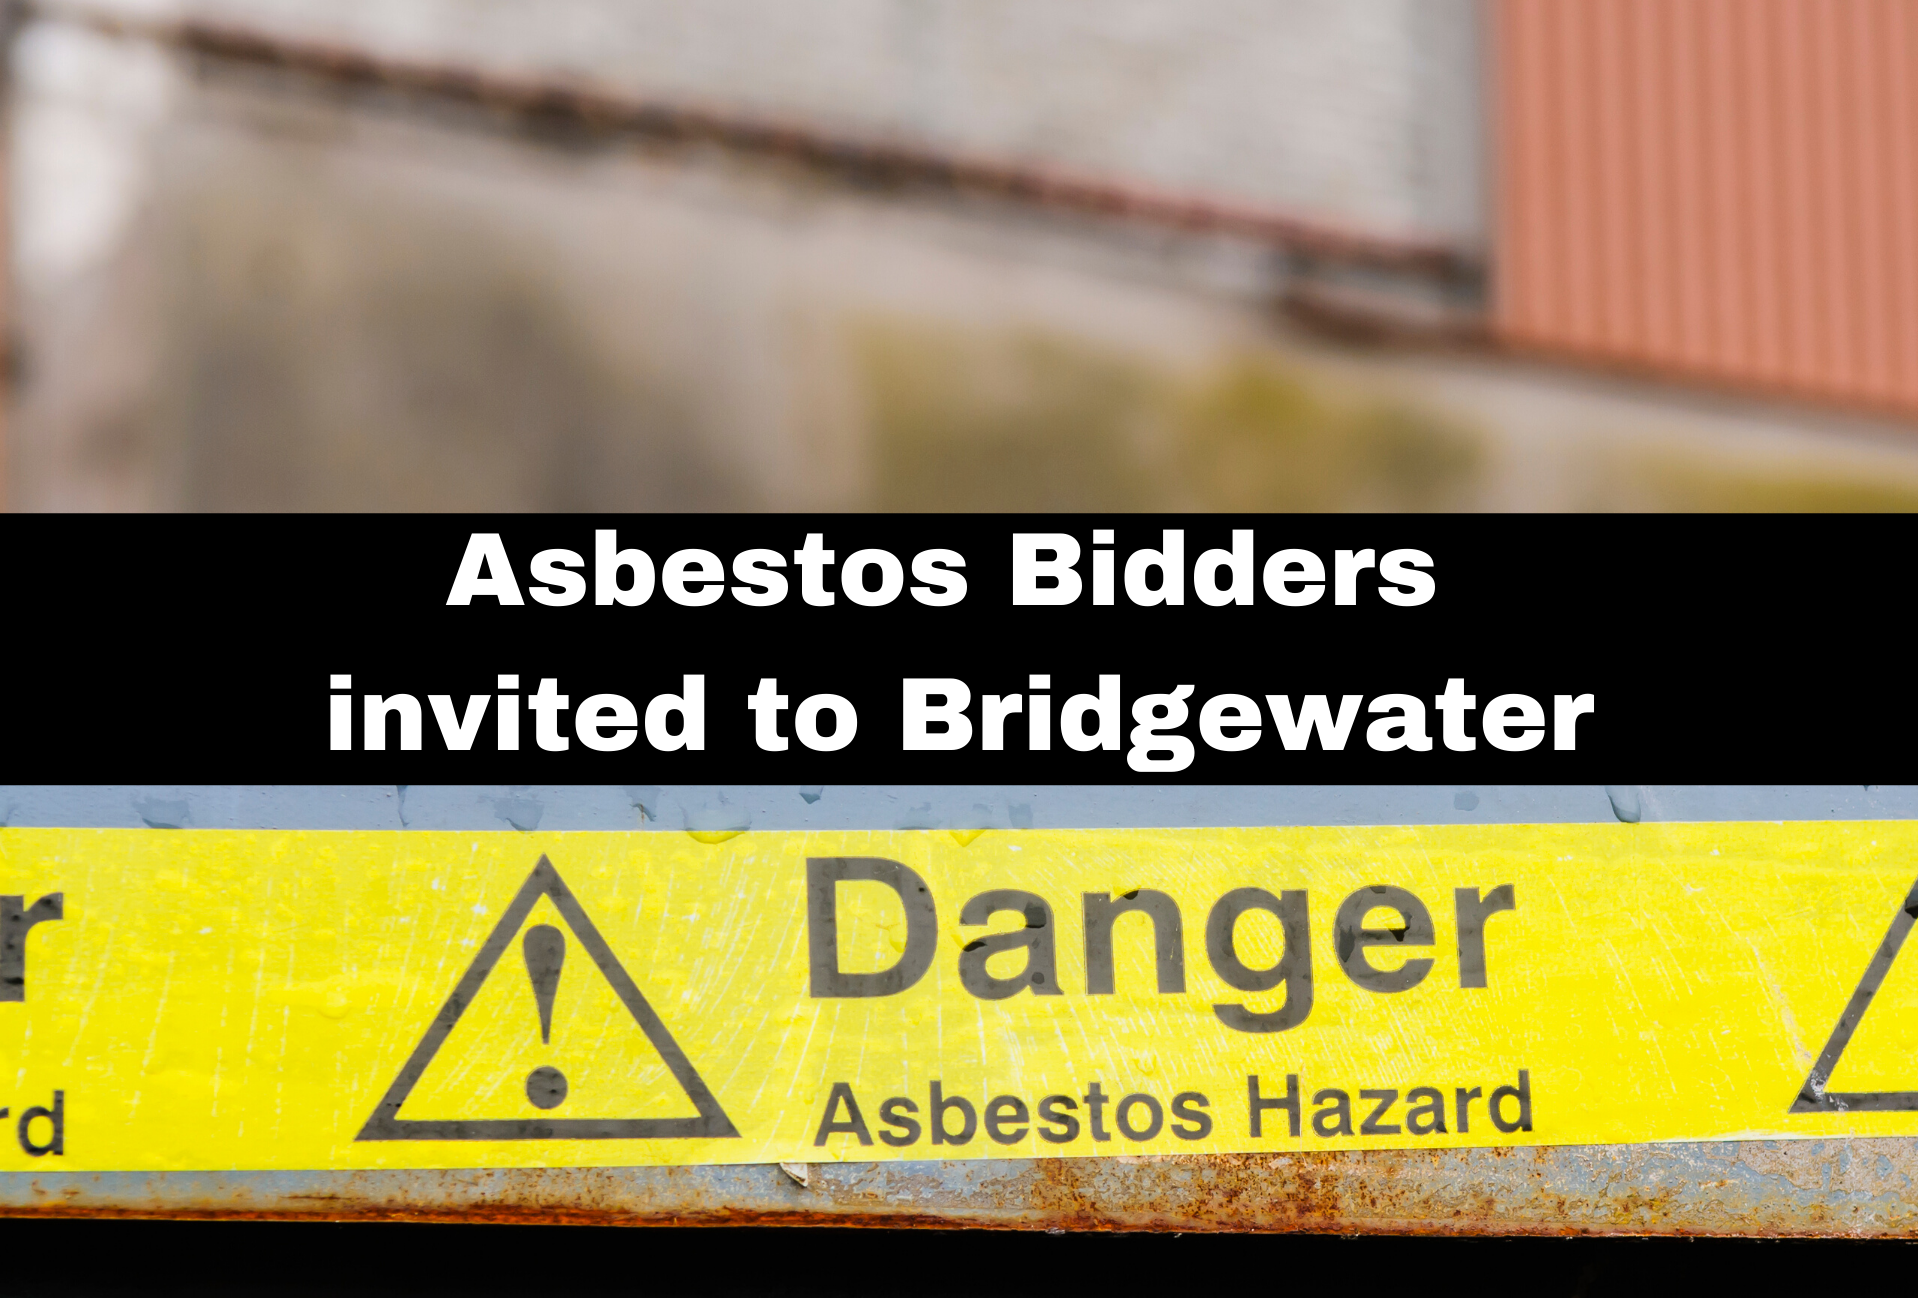 Asbestos Bidders invited to Bridgewater